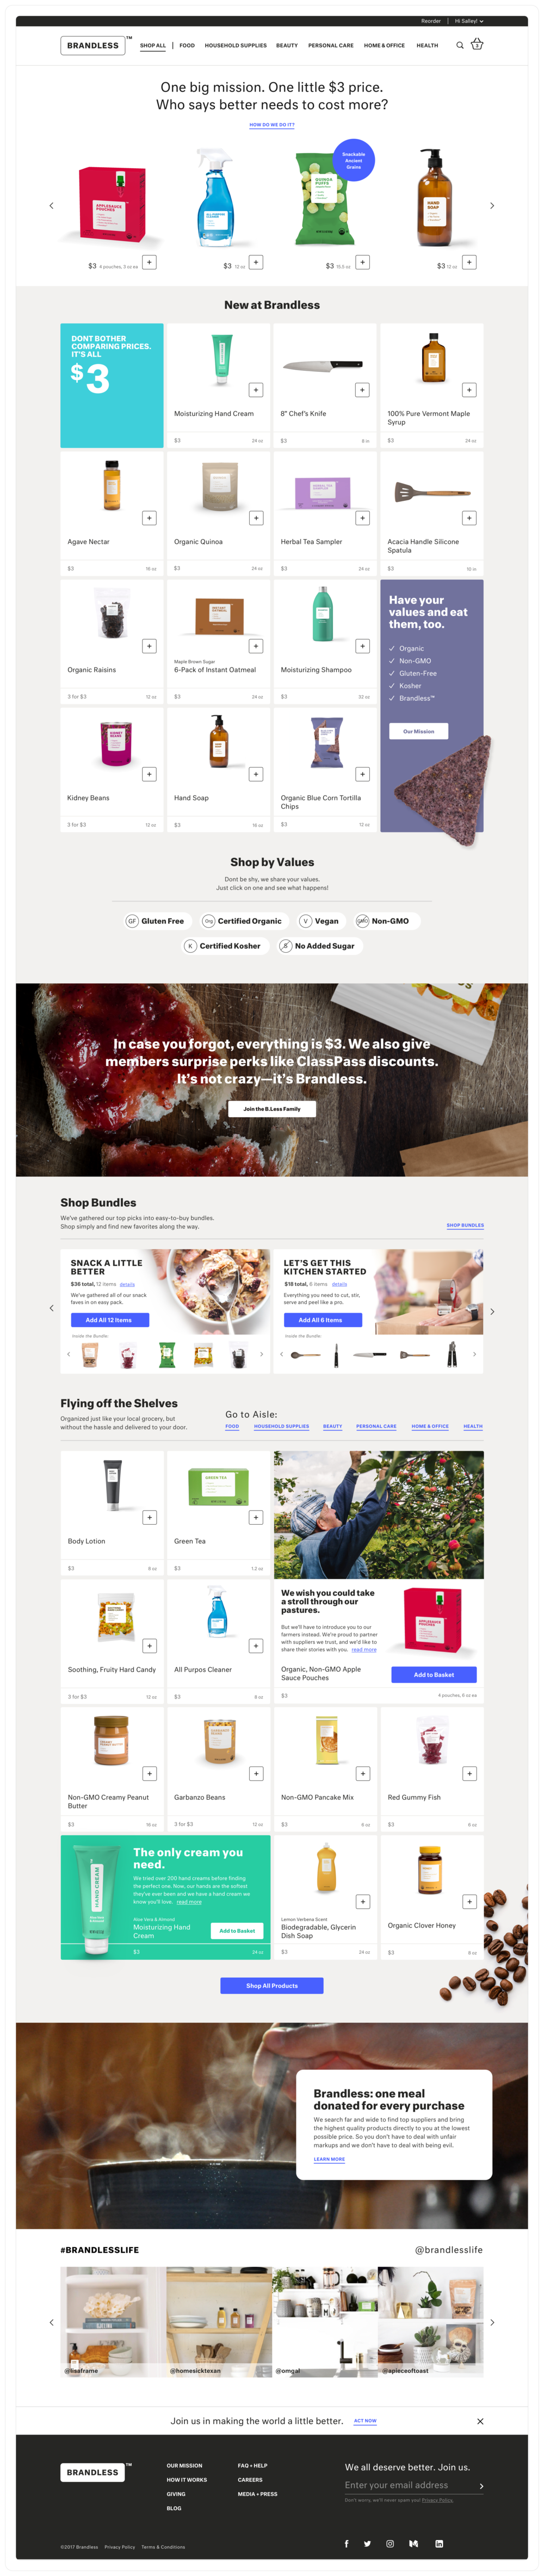 The home page re-uses components from the the category landing page and also allows customers to explore more about the brand and membership.